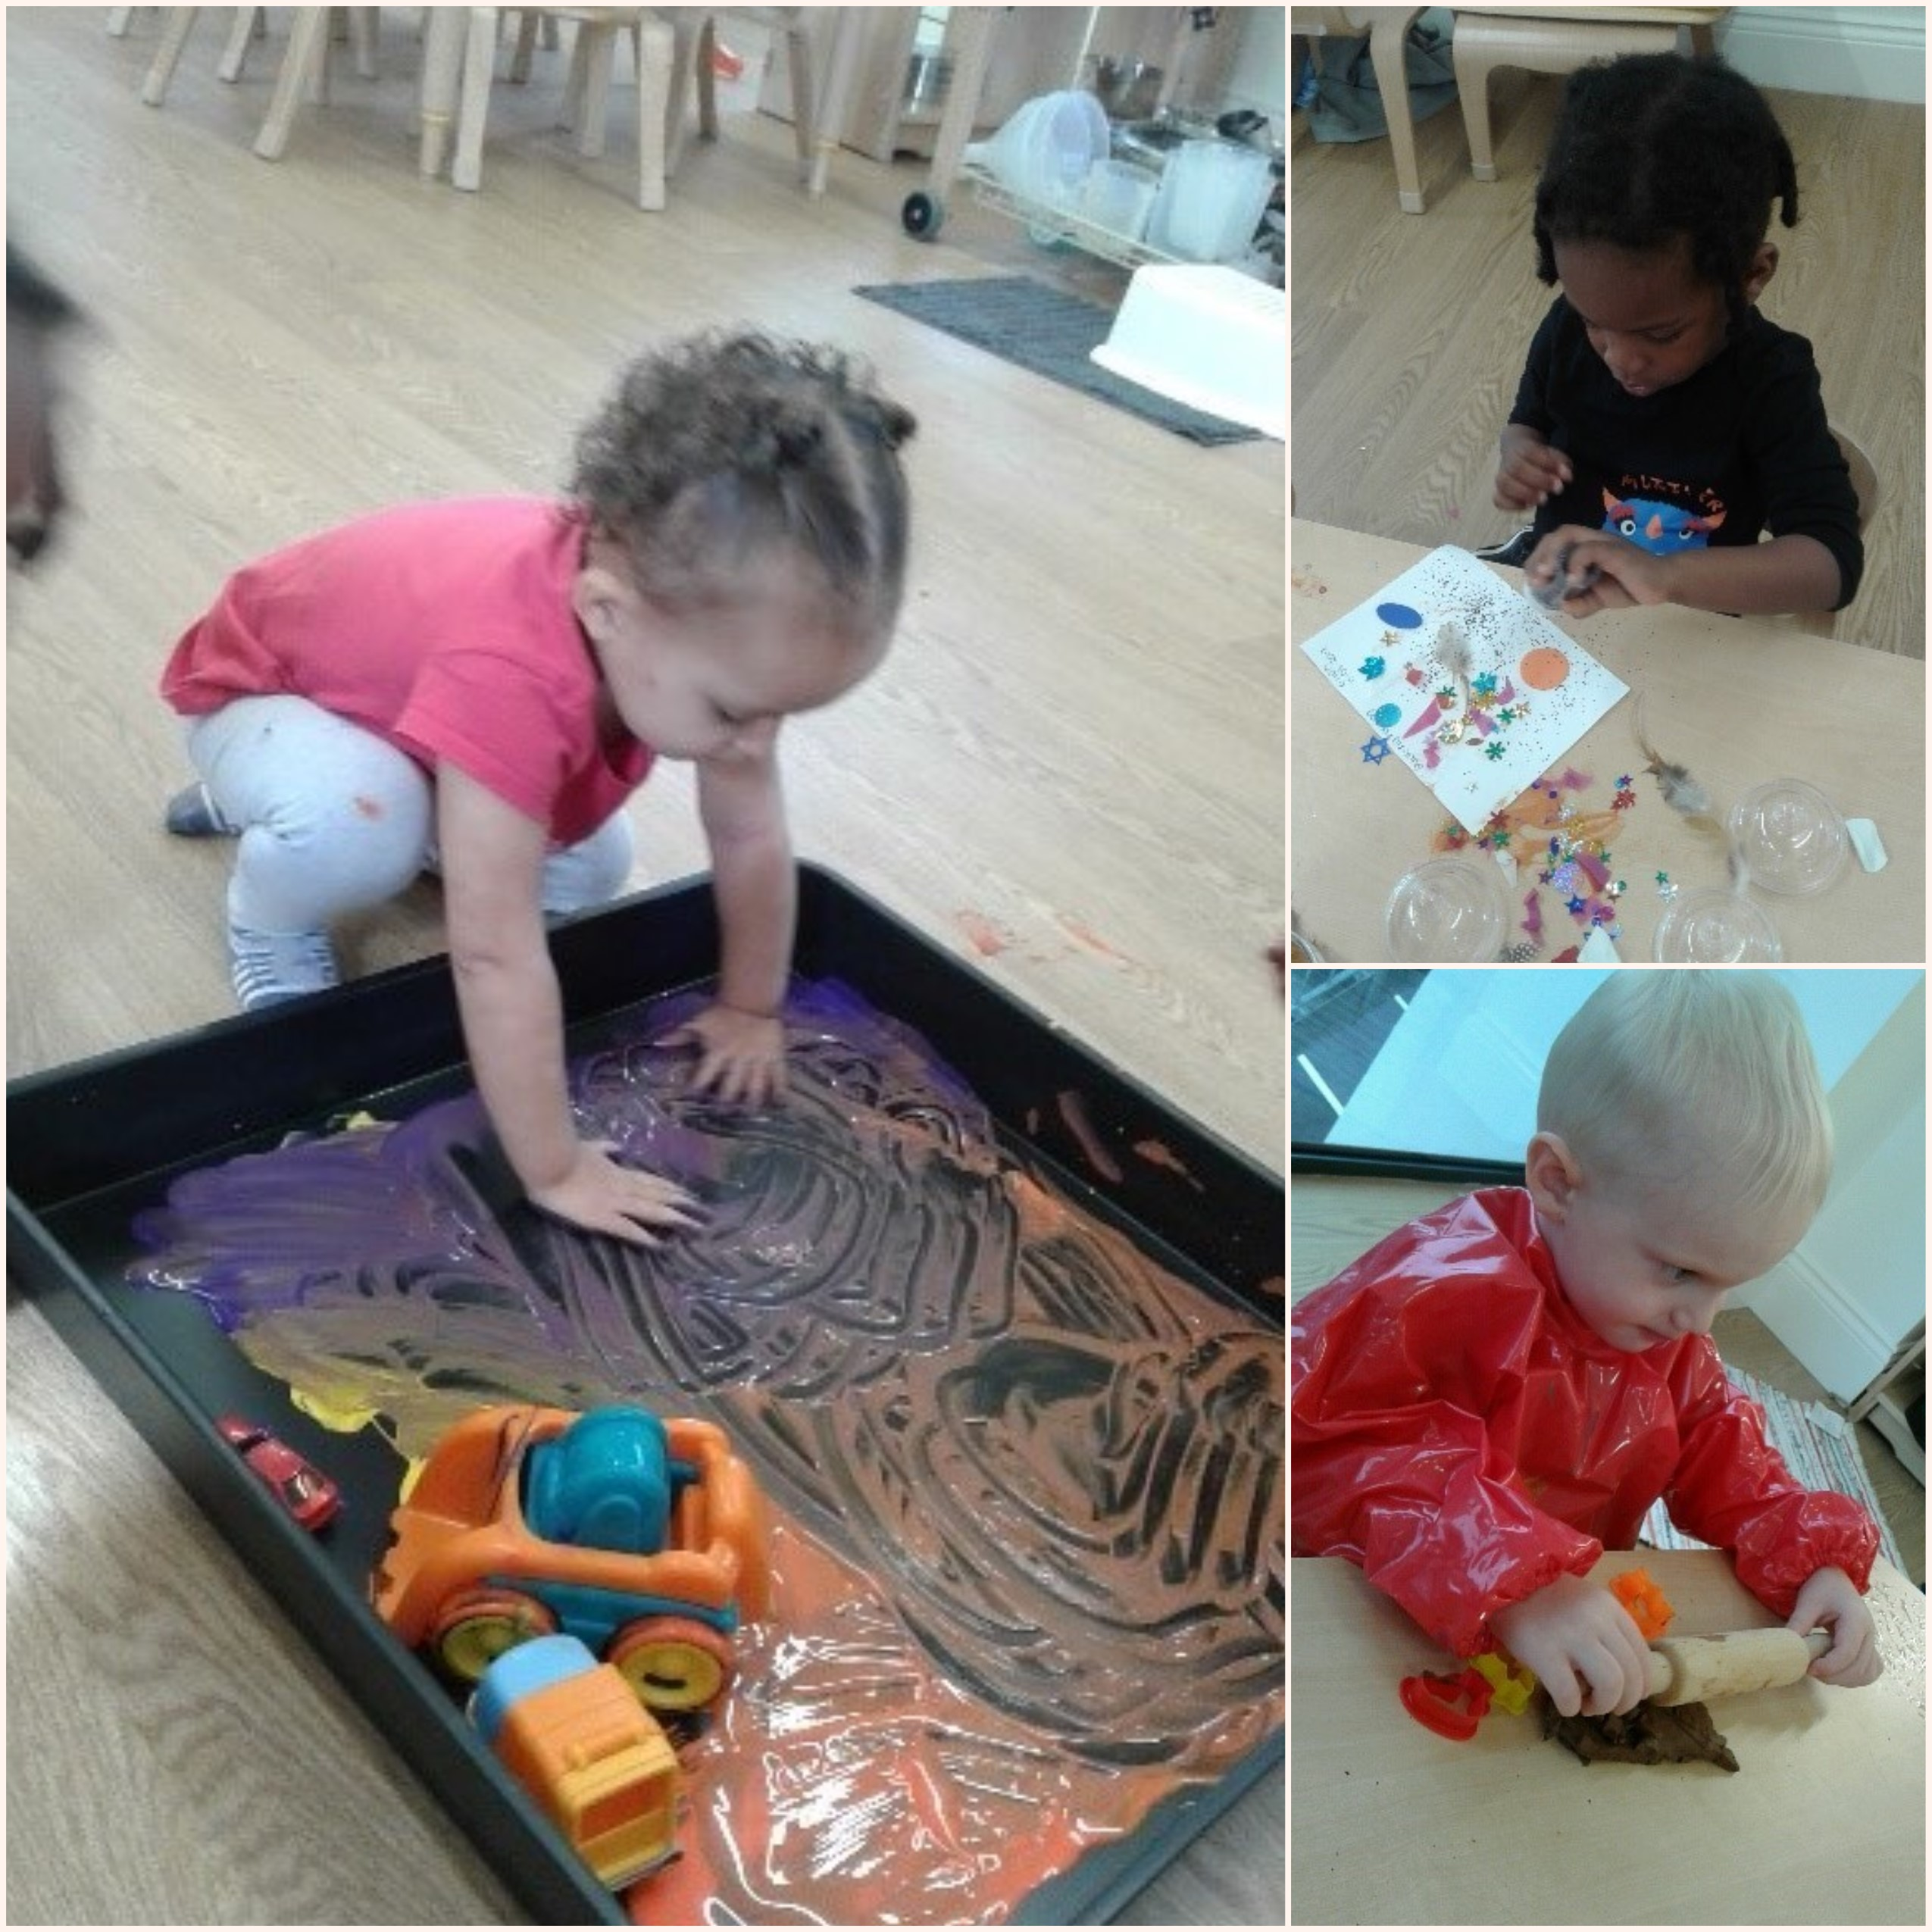 The toddlers have been very inquisitive, exploring all different types of creative materials and methods.